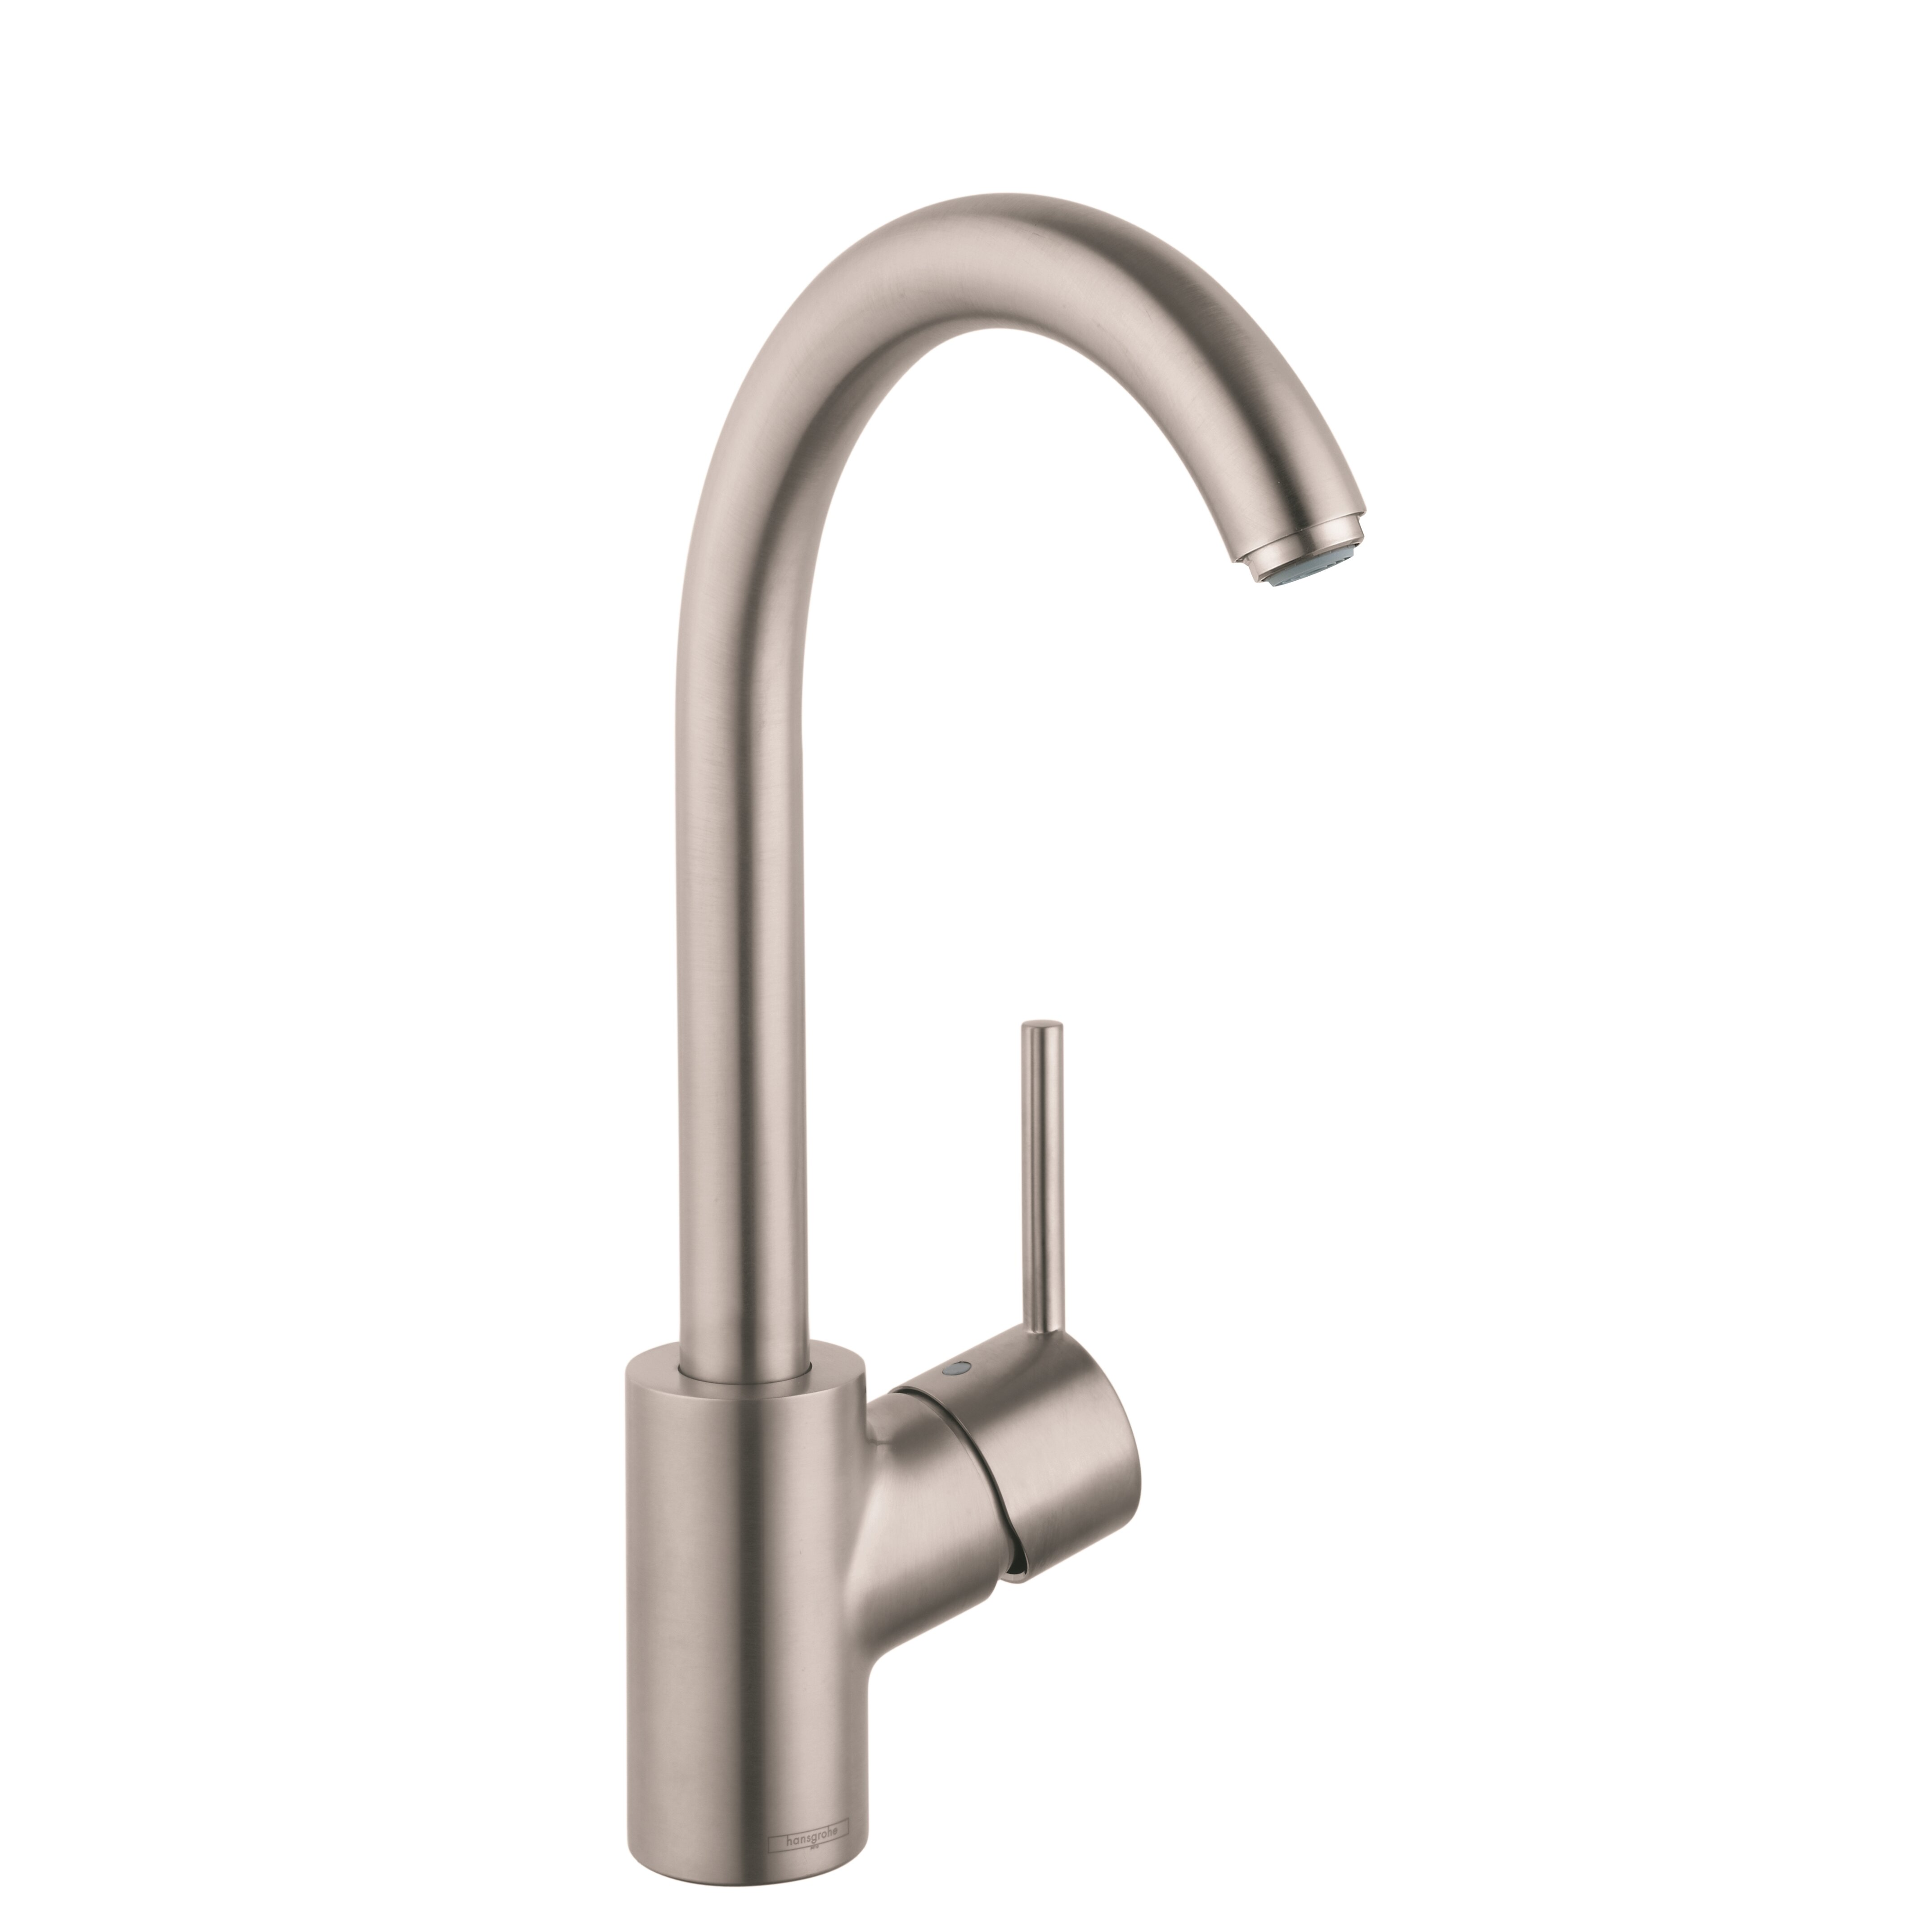 28 Hansgrohe Kitchen Faucet Reviews Hansgrohe Talis S within Astounding Hansgrohe Kitchen Faucet Reviews you should have